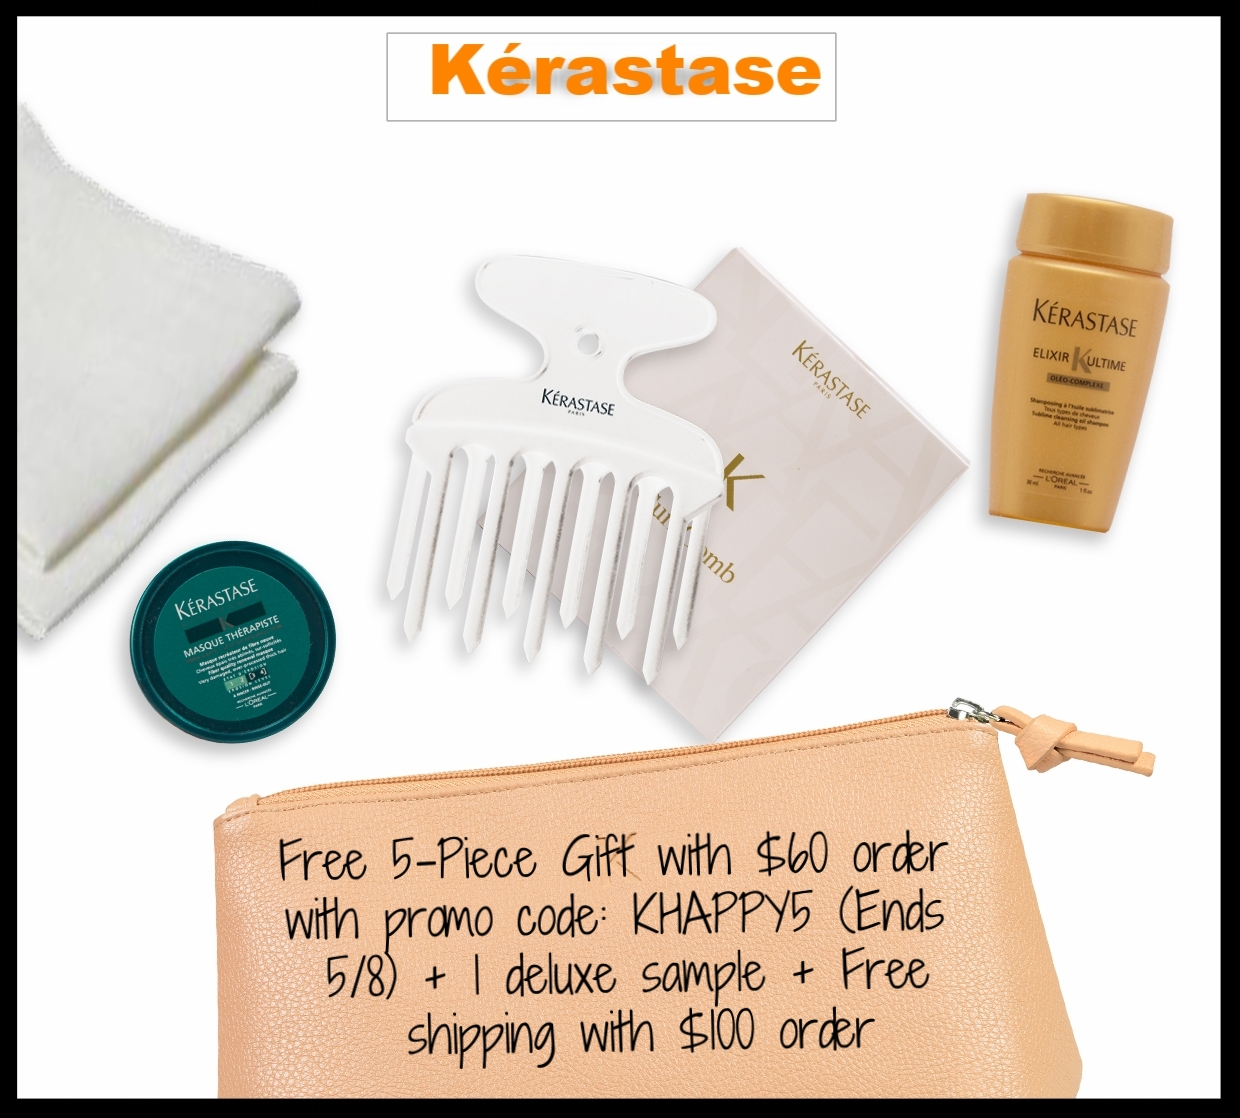 Kérastase  ~ Free 5-Piece Gift with $60 purchase with promo code: KHAPPY5 (Ends 5/8) + 1 deluxe sample + Free shipping with $100 order